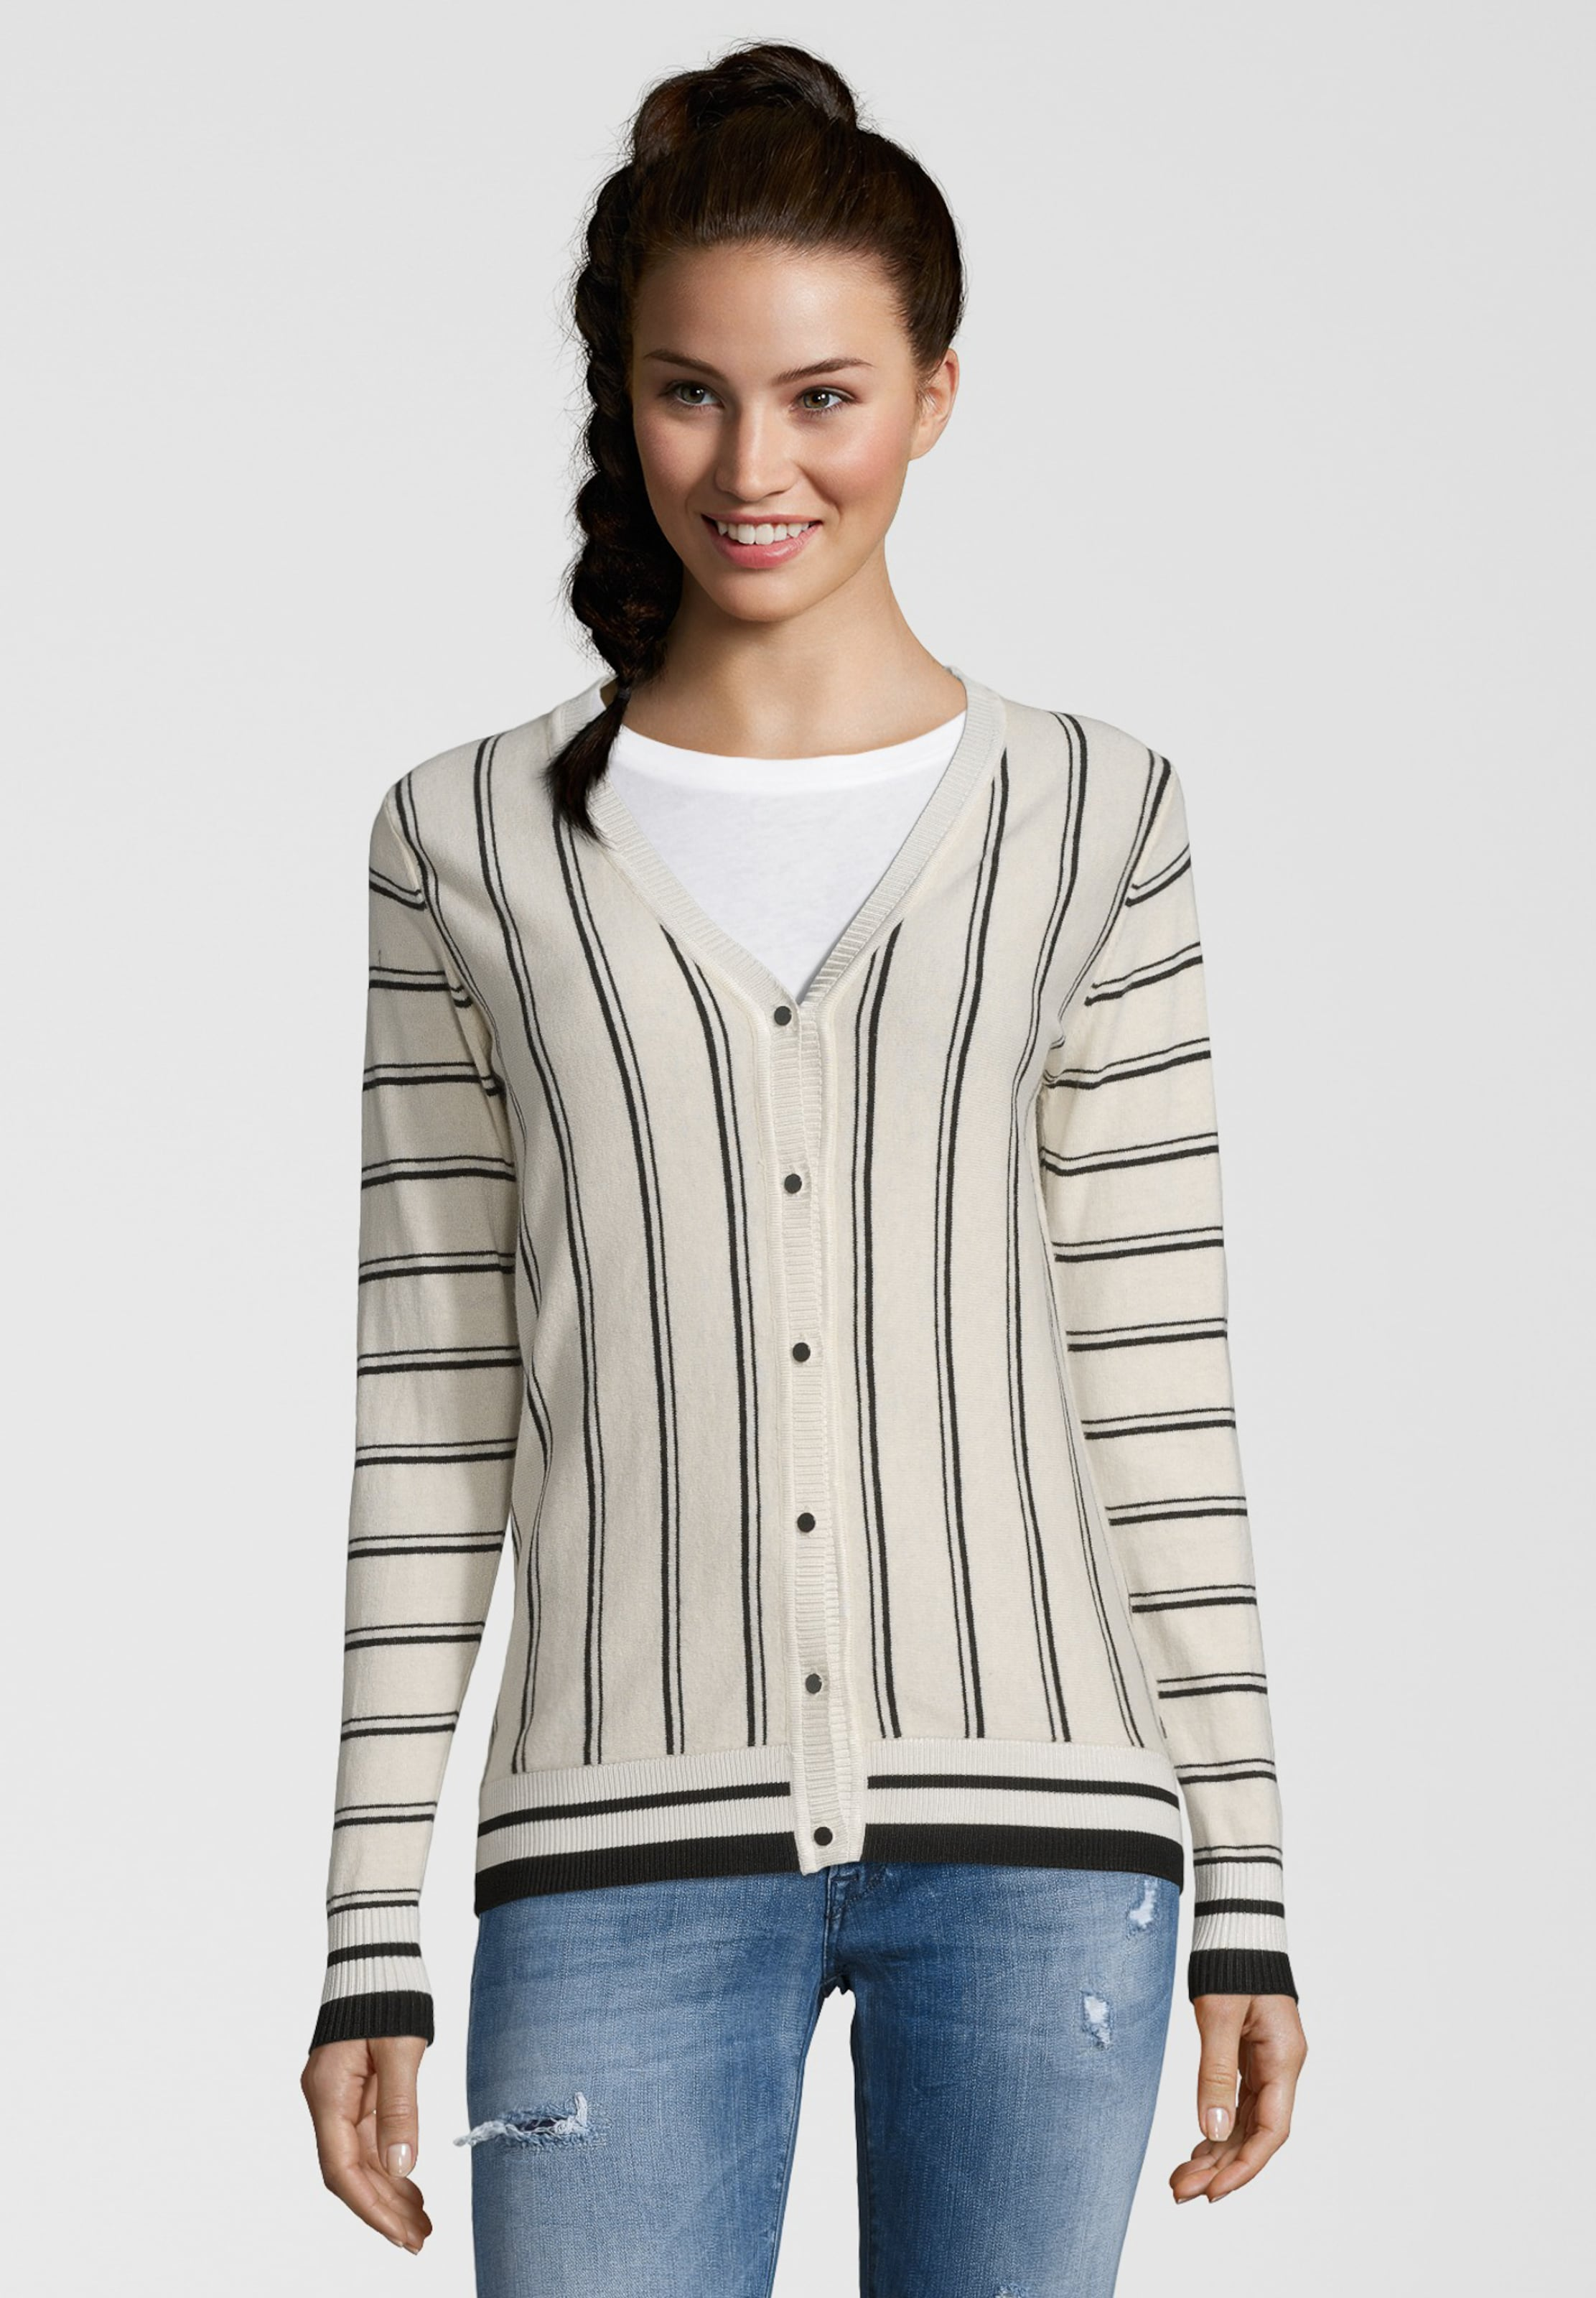 Scotchamp; Soda Soda Cardigan In Beige Cardigan Scotchamp; In Cardigan In Beige Soda Scotchamp; zqUVpGMS